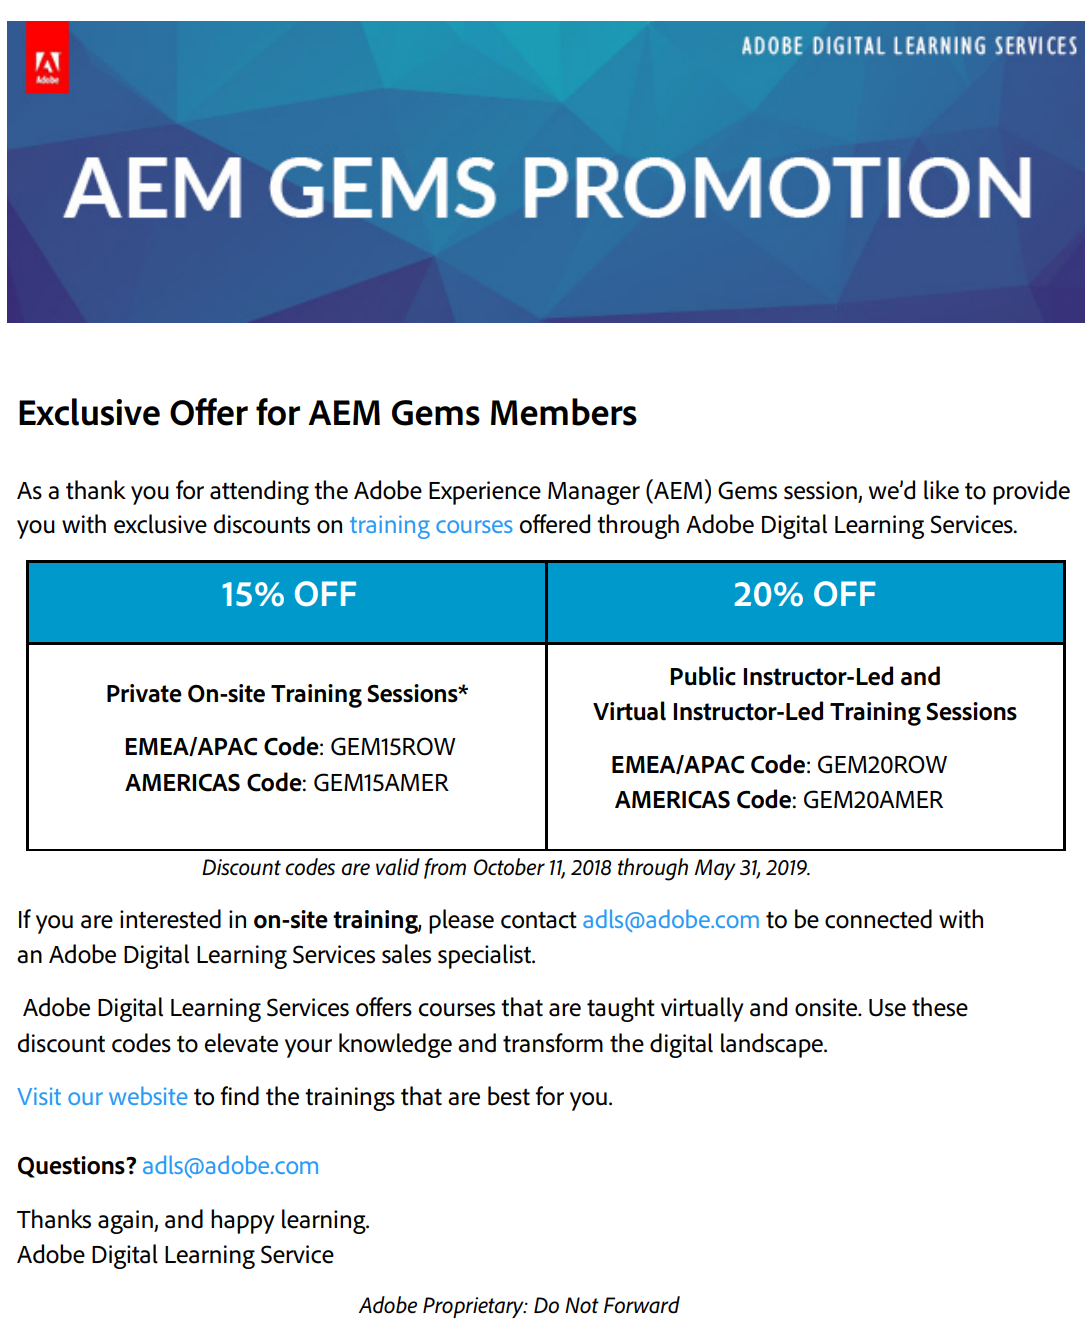 aem_gems_-_trainingpromotion